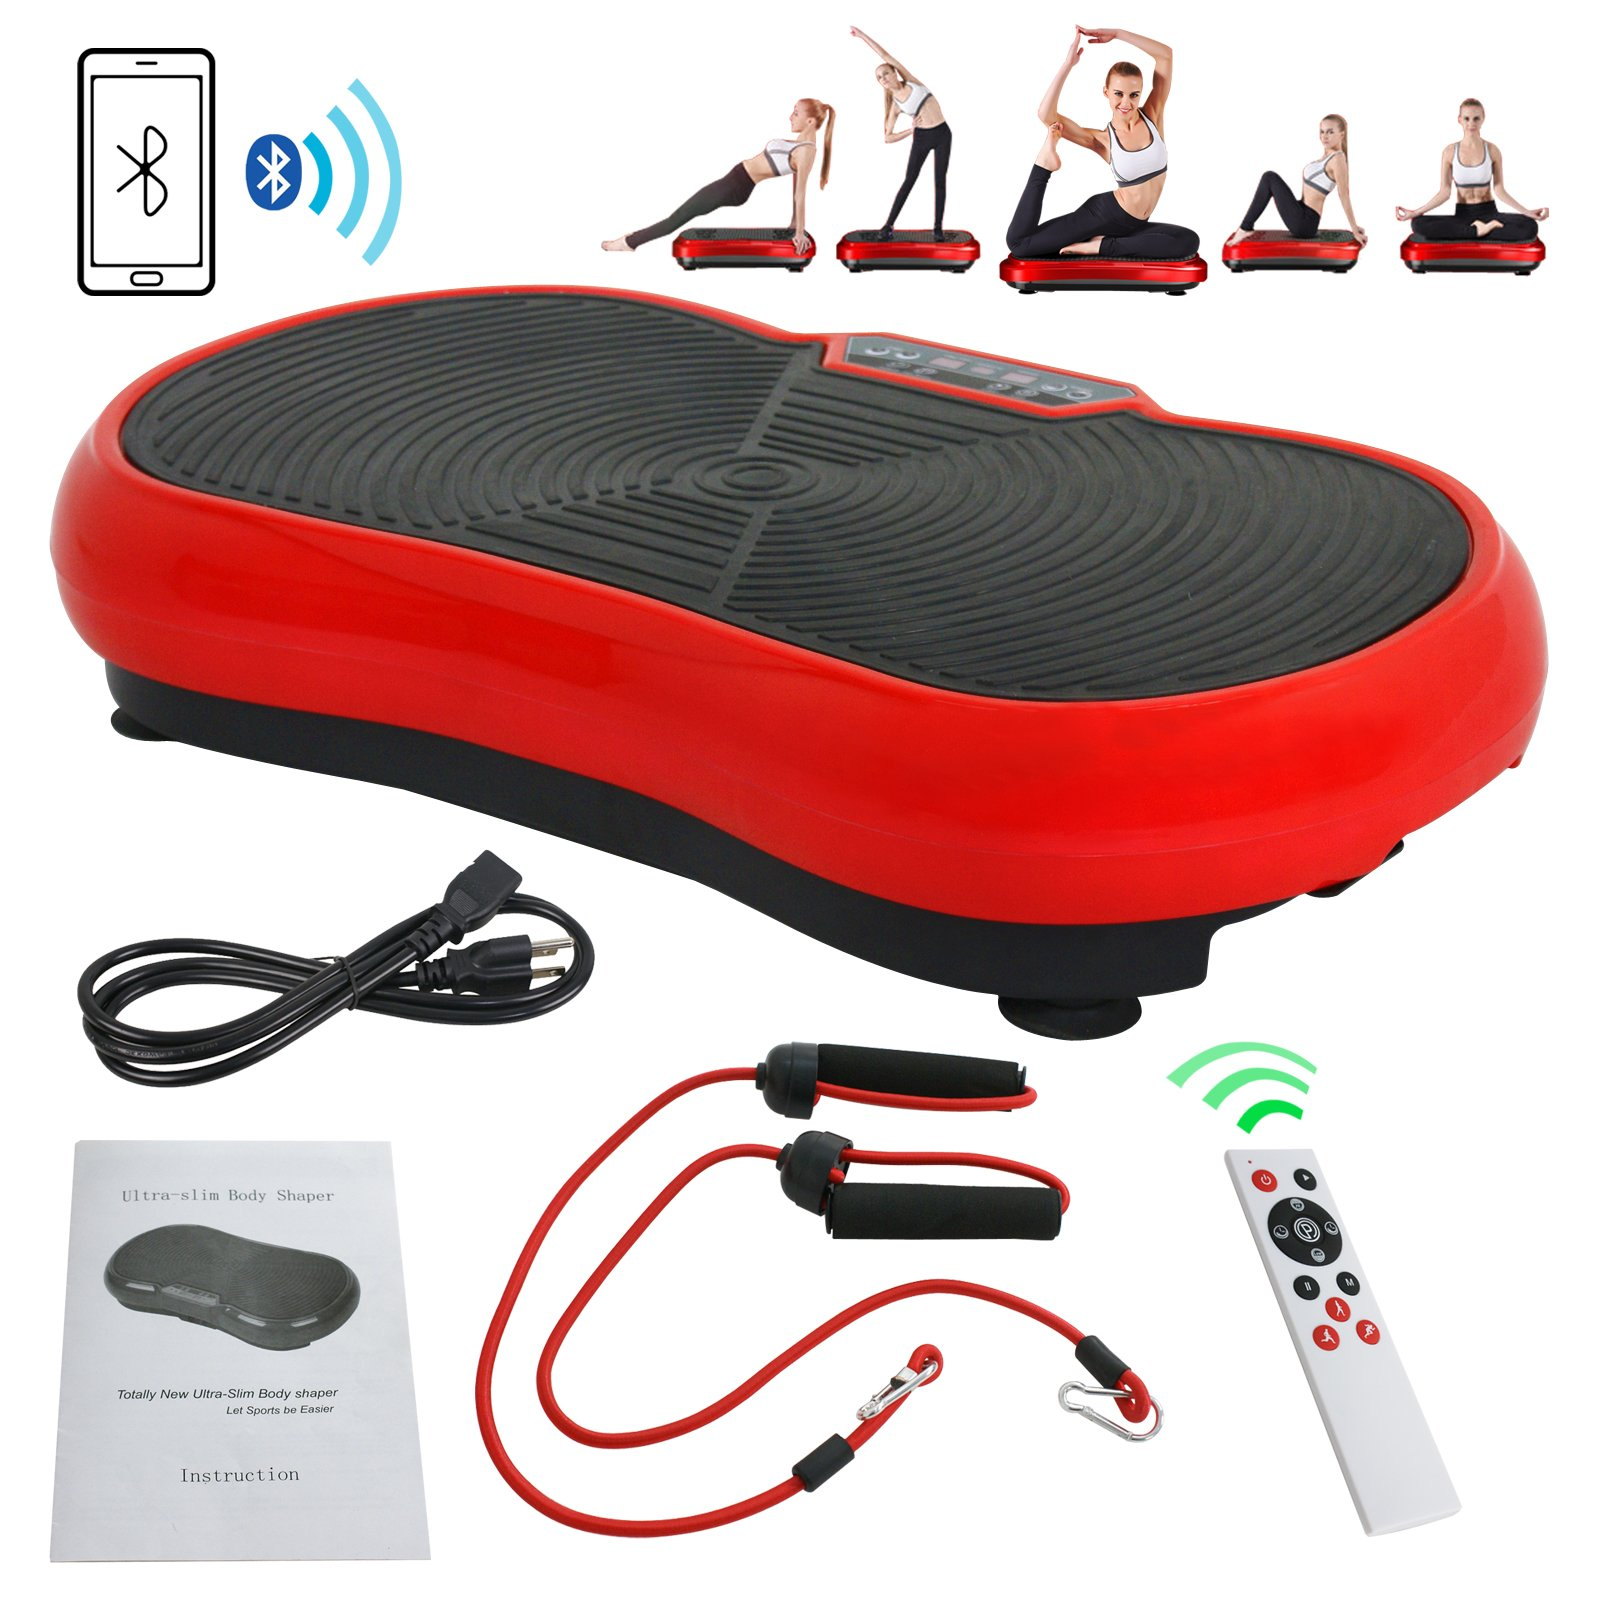 Fitness Vibration Platform Full Body Workout Machine Vibration Plate W/Remote Control and Balance Straps, Bluetooth Exercise Equipment(Red)